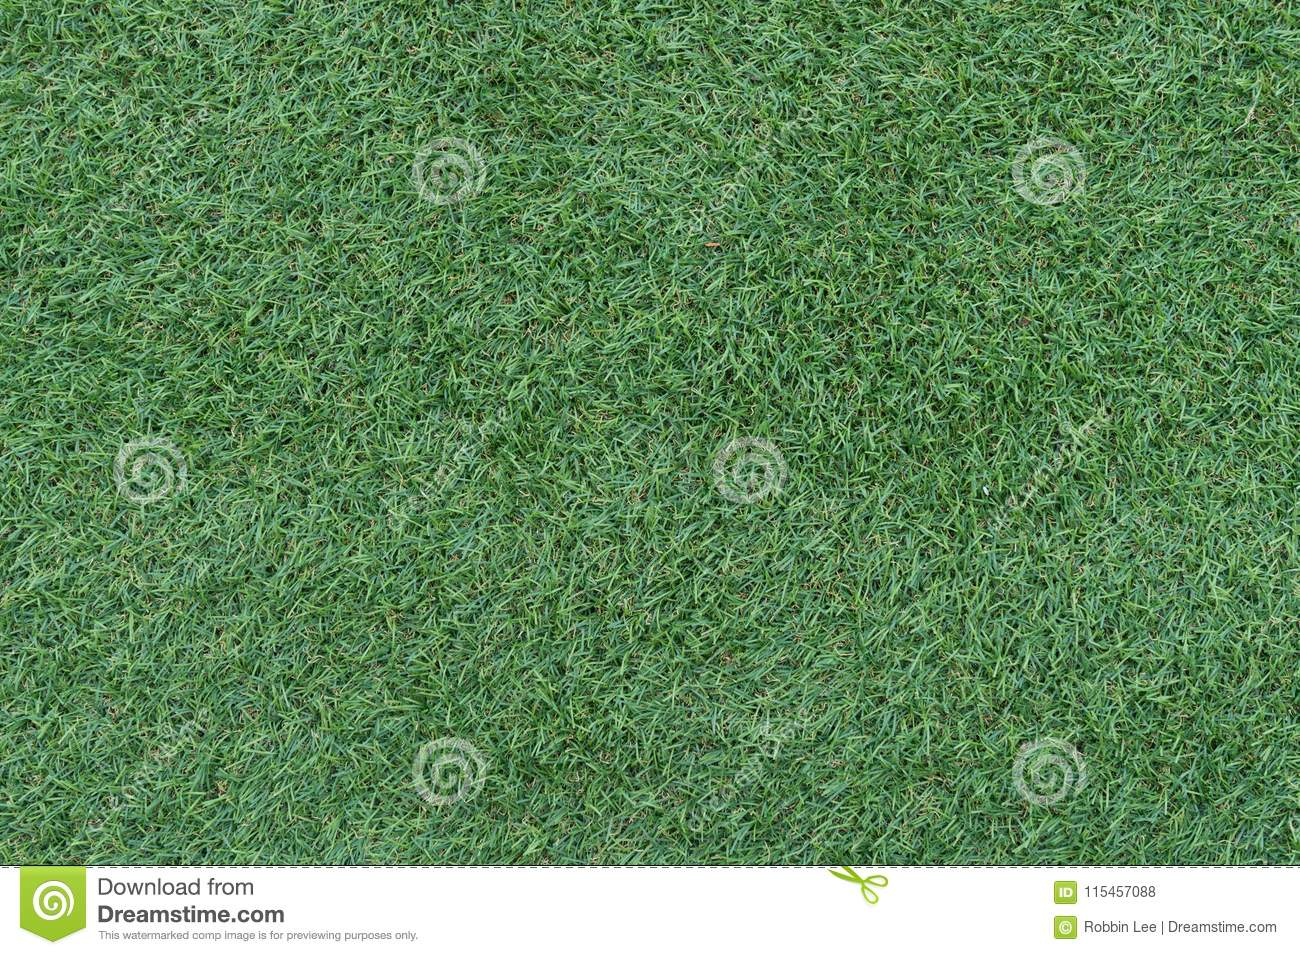 Beautiful green grass background, texture, pattern.